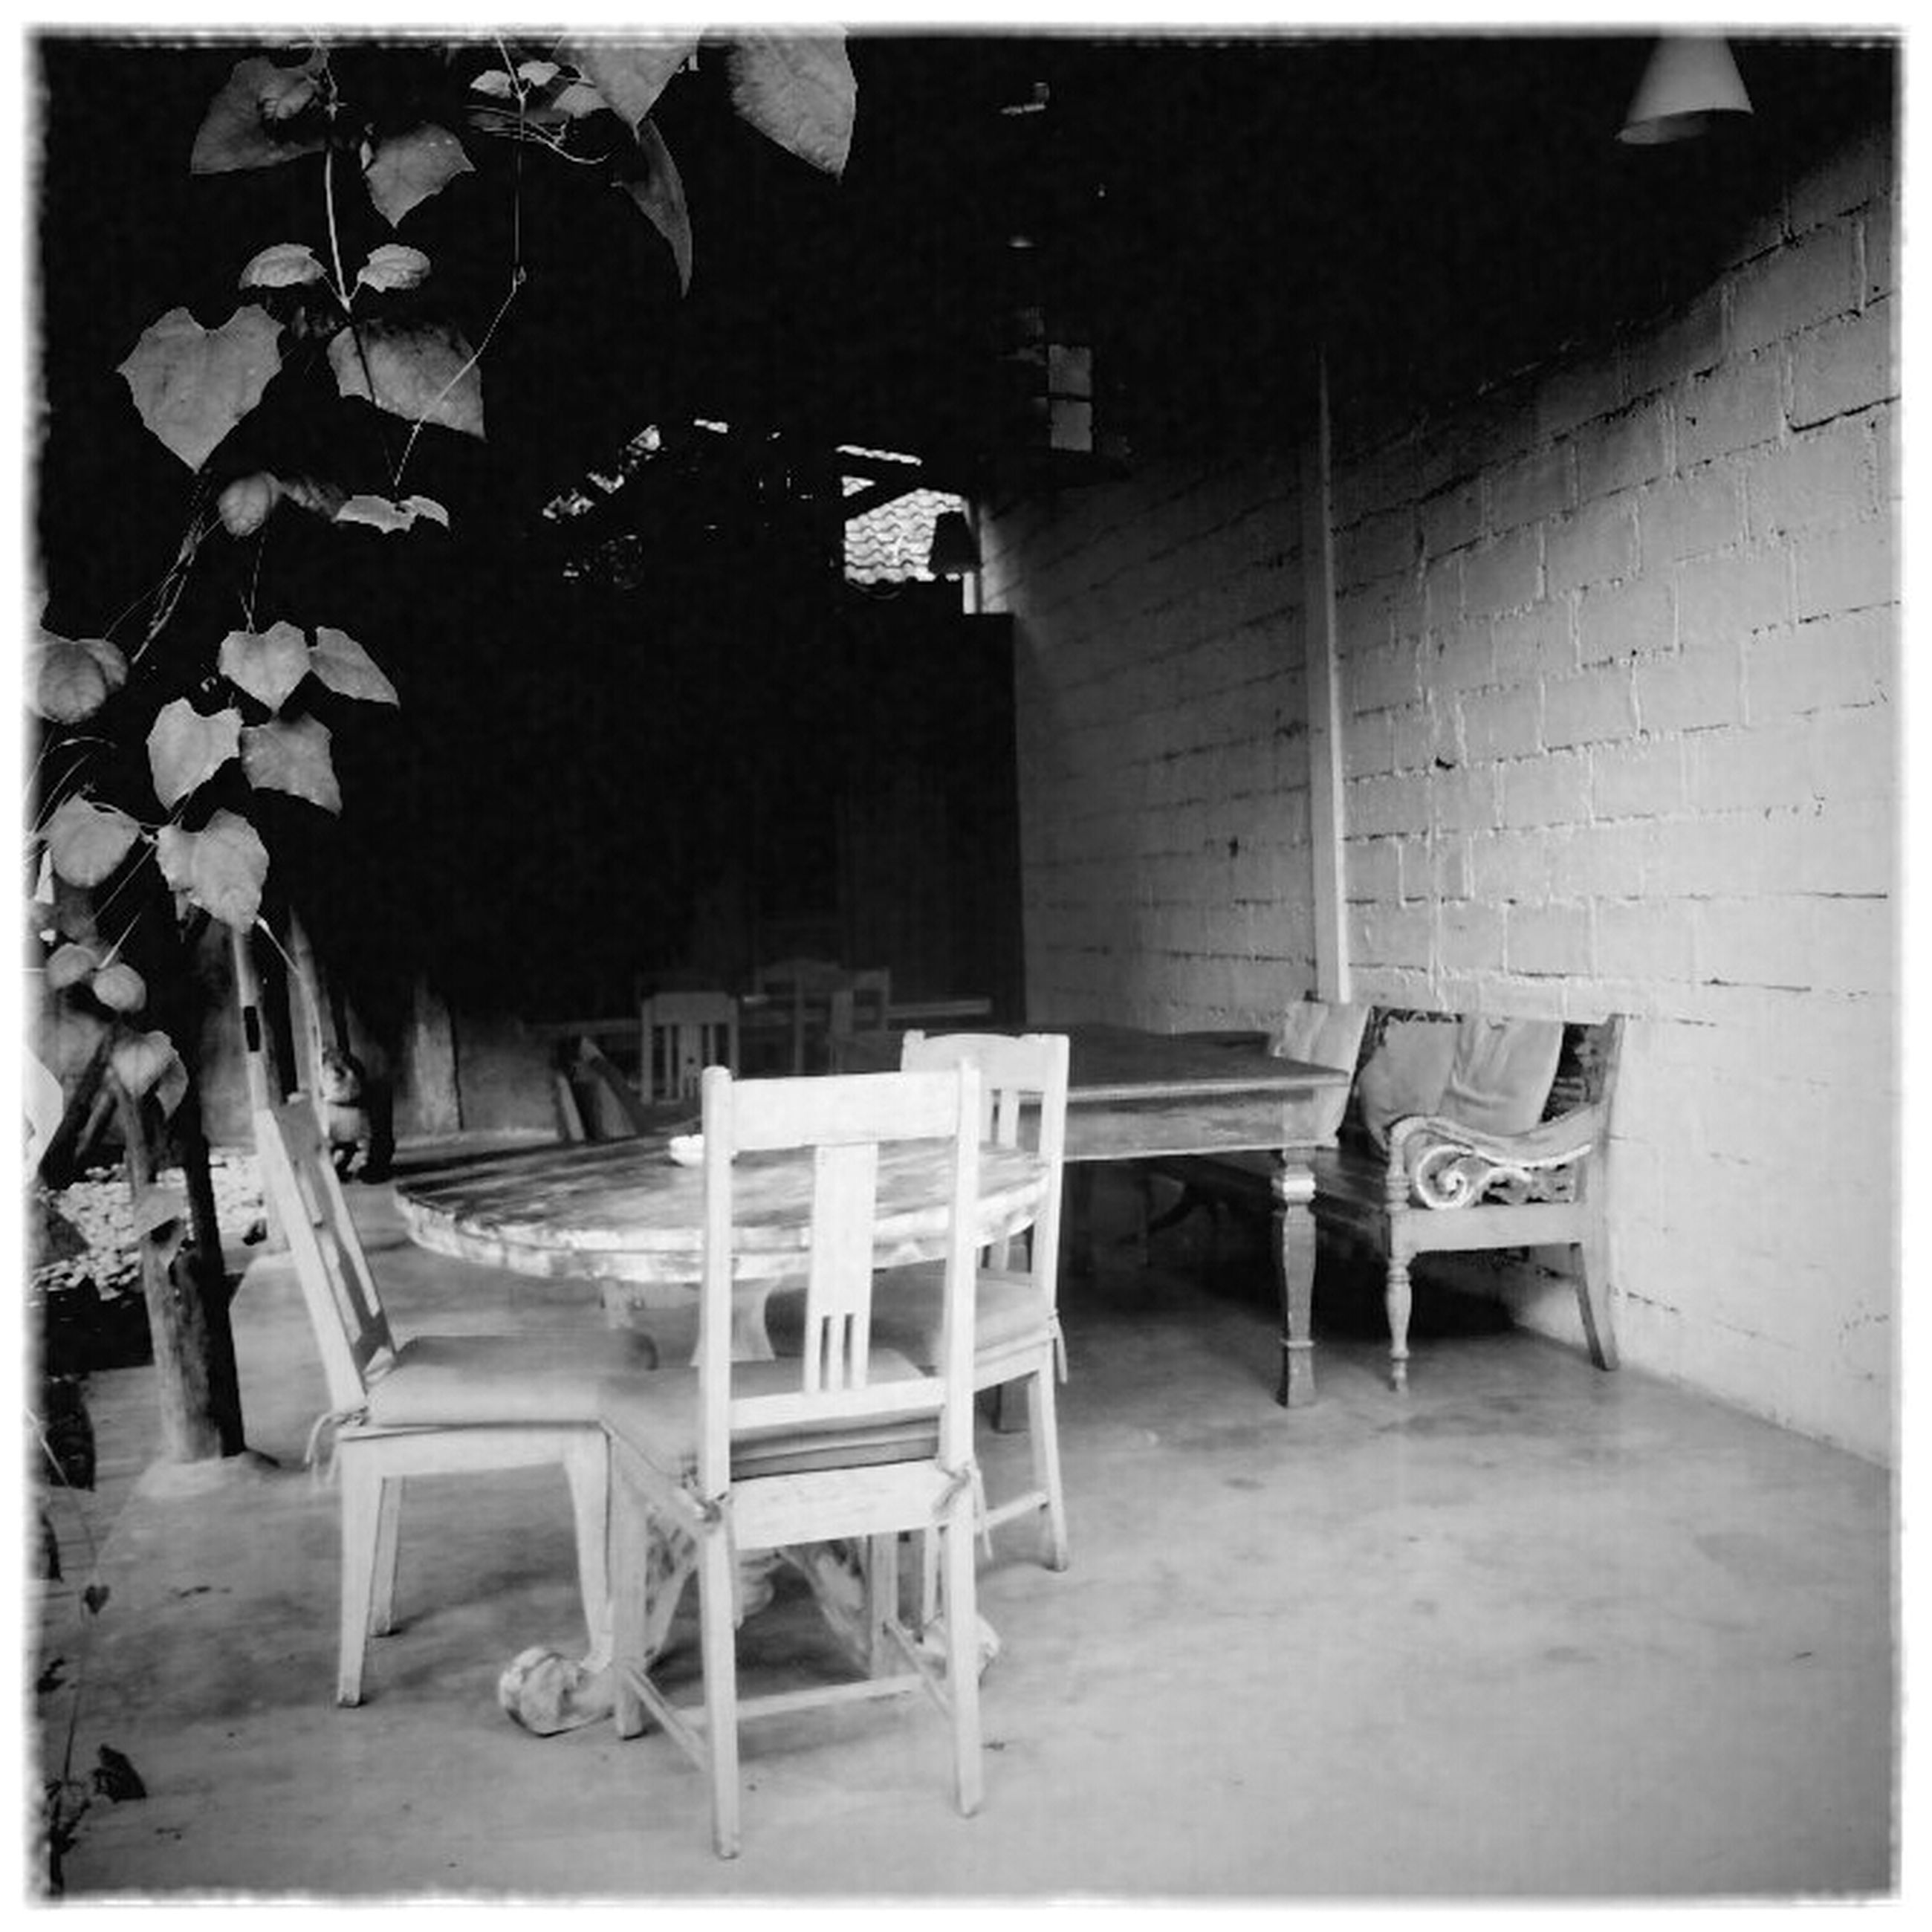 chair, empty, absence, transfer print, table, indoors, architecture, auto post production filter, built structure, seat, house, furniture, building exterior, no people, day, sunlight, window, bench, abandoned, sidewalk cafe